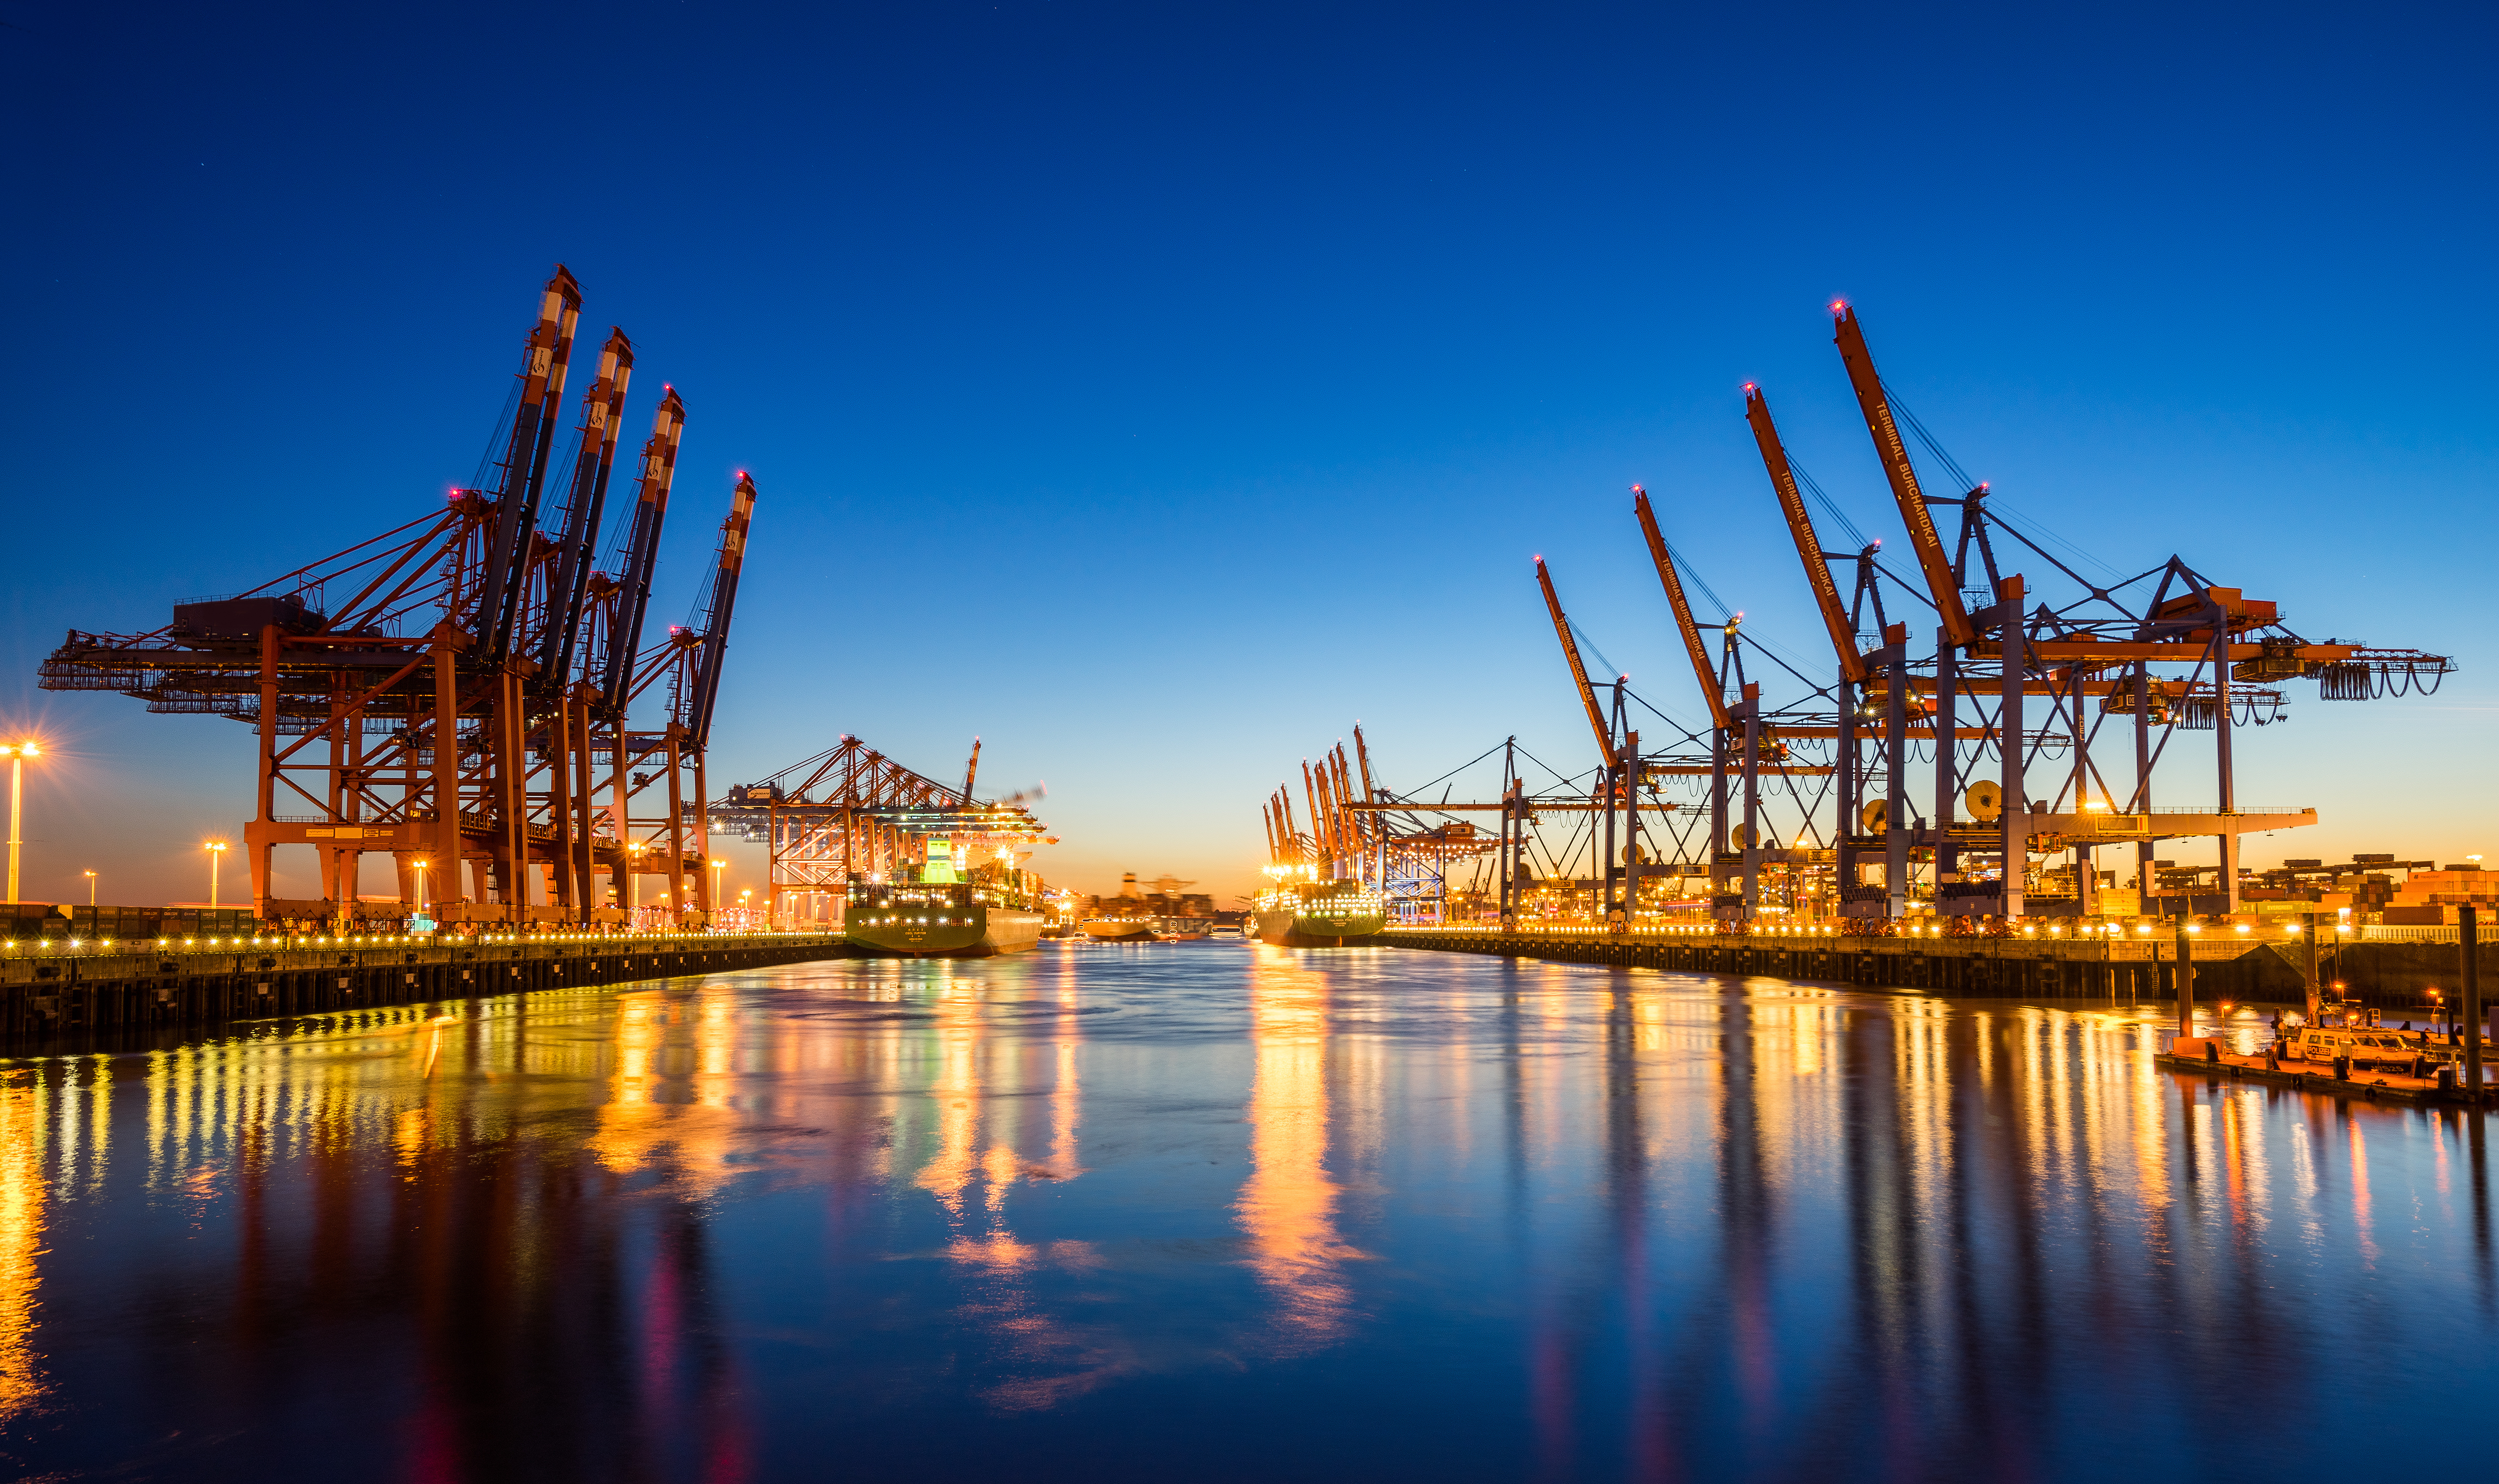 The Port Of Long Beach Located In Southern California Is An Integral Part Trade Between U S And Asia Boasting A Mind Ing Amount Cargo